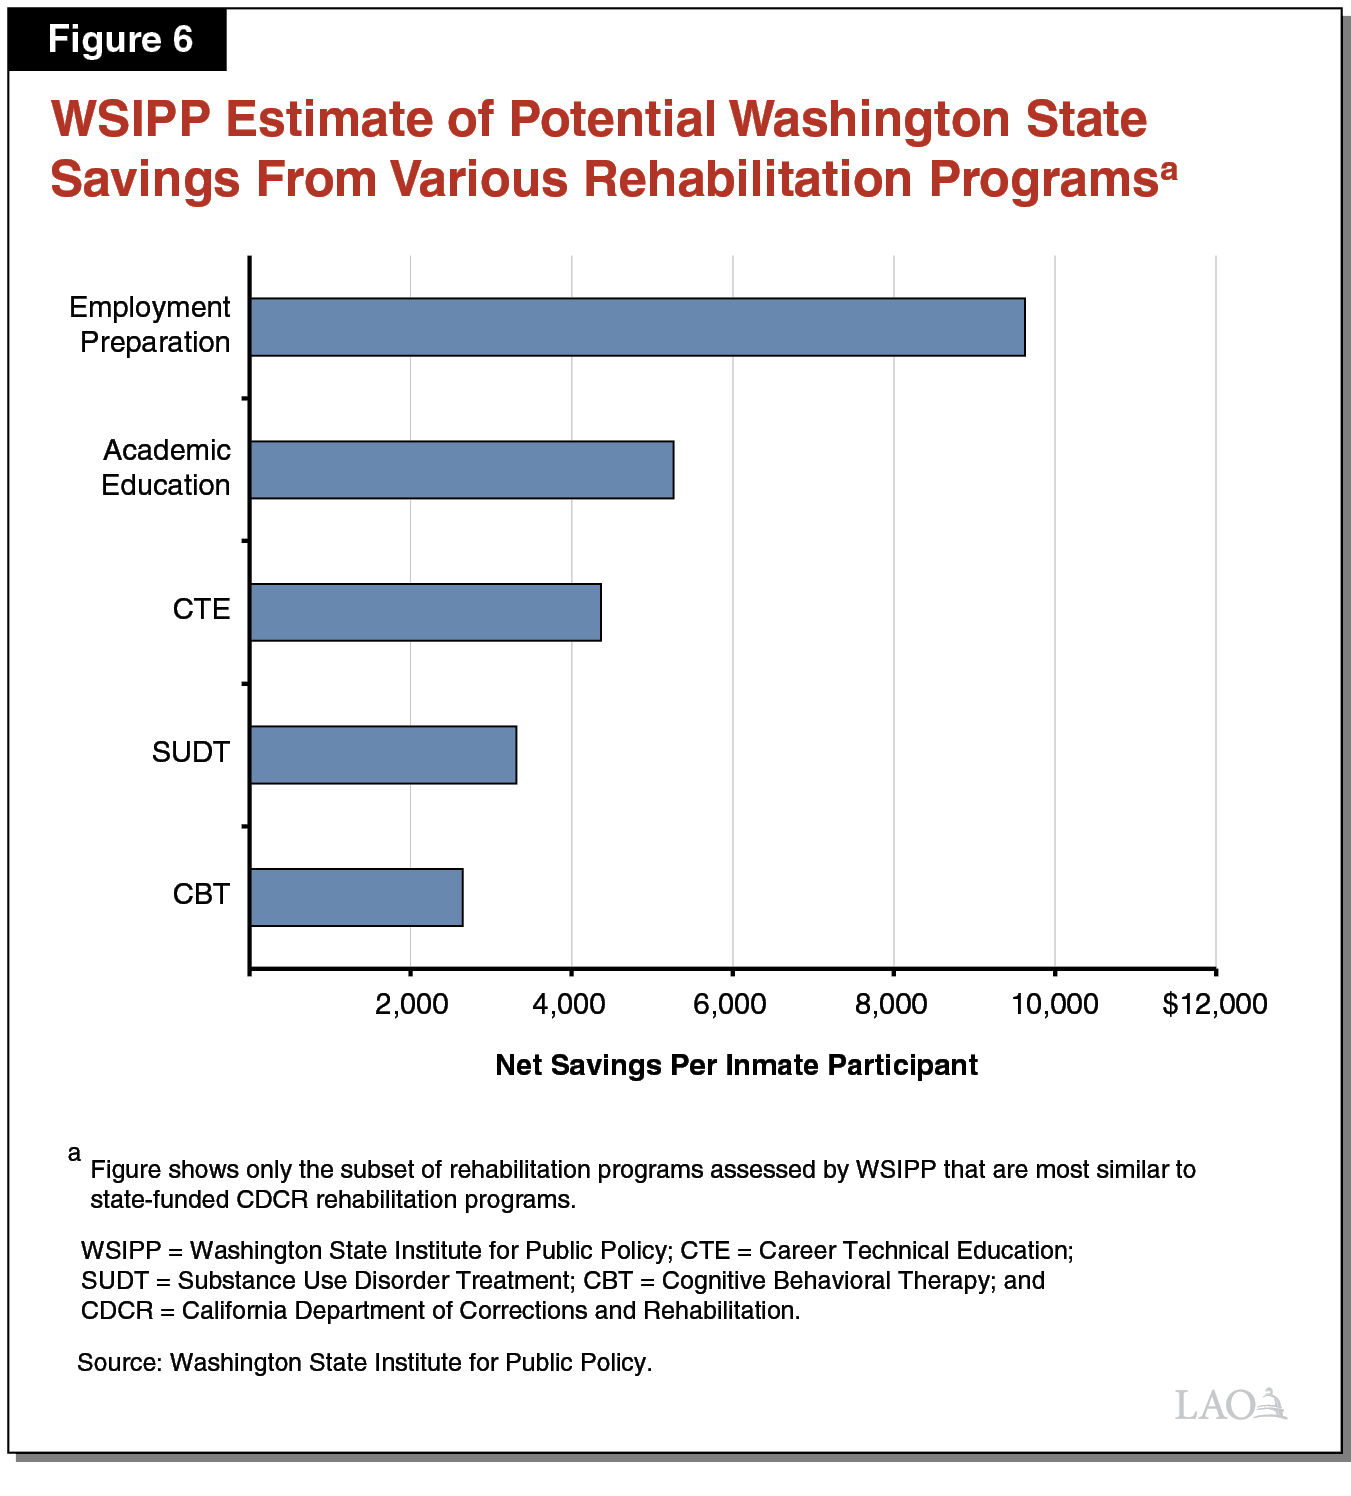 Figure 6 - WSIPP Estimate of Potential Washington State Savings from Various Rehabiliation Programs